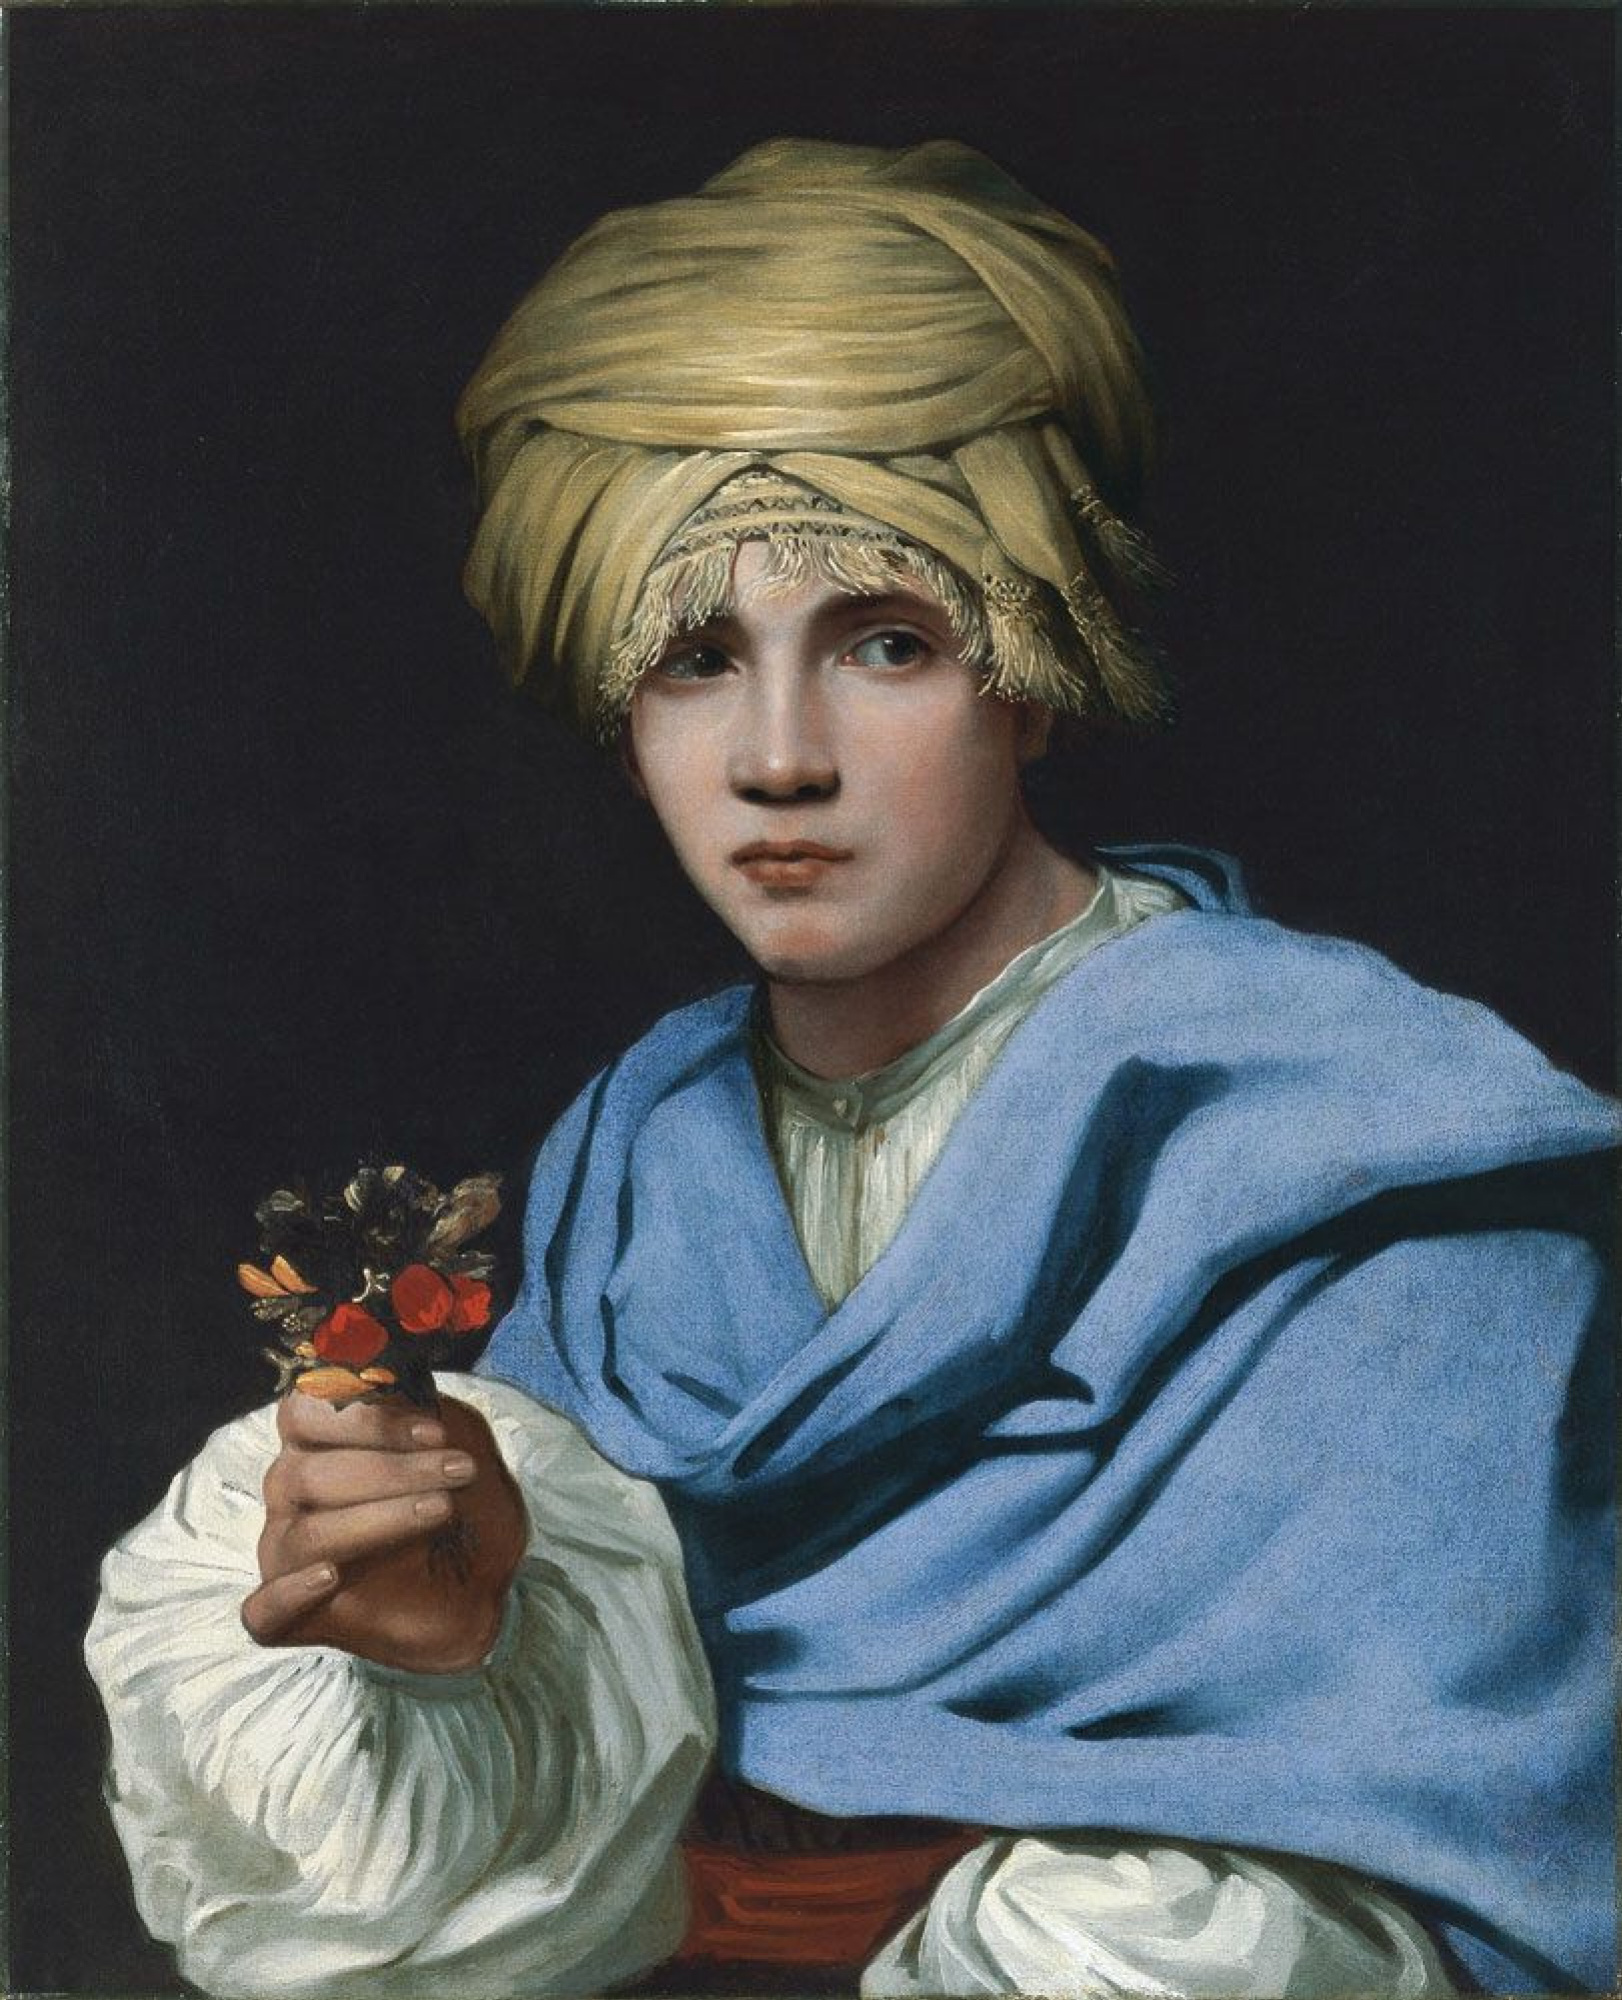 Michael Swerts. Boy in a turban holding a nosegay